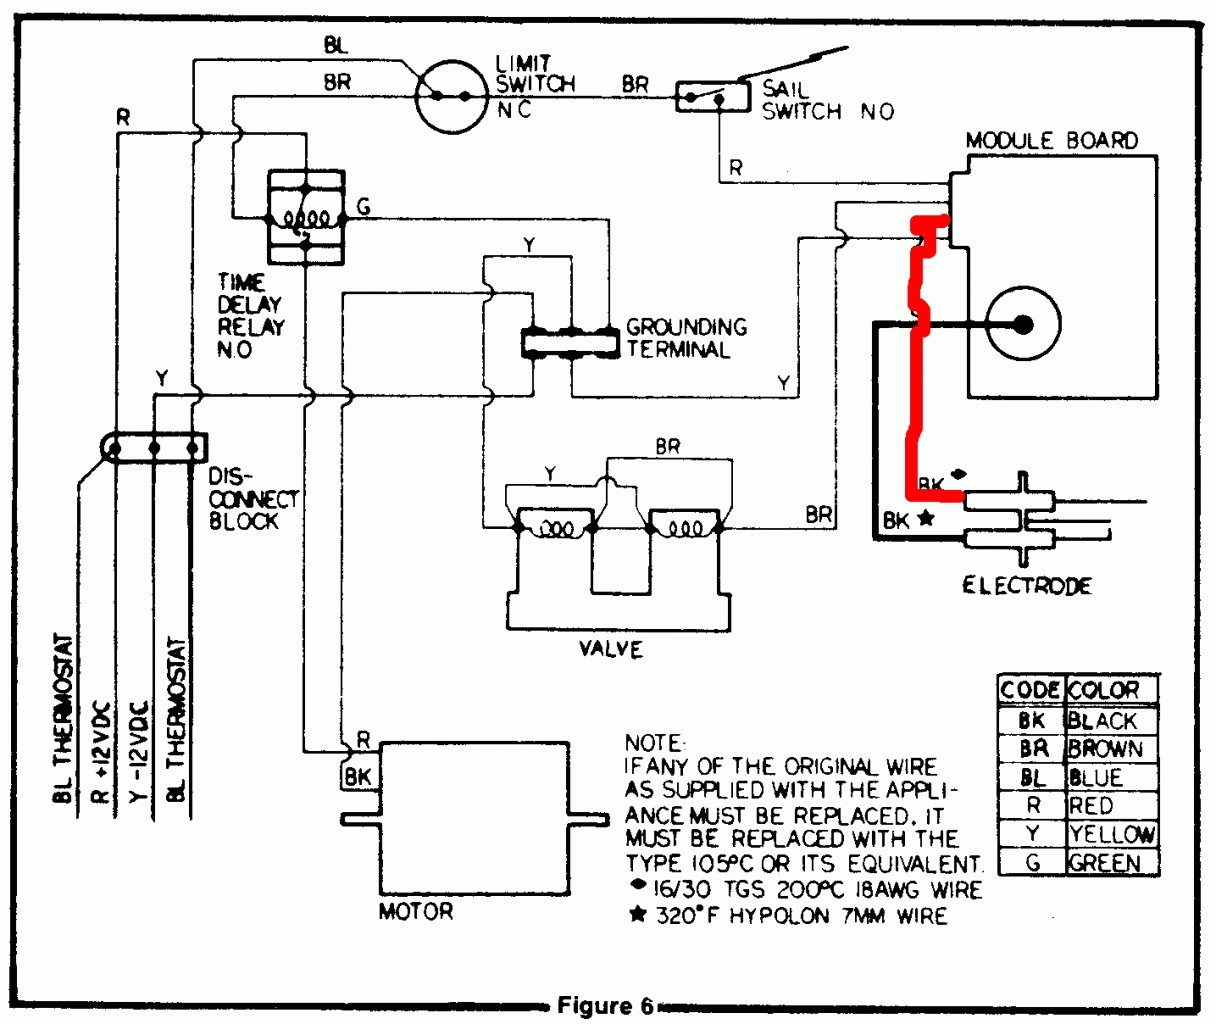 hight resolution of atwood mobile furnace wiring diagram schematic diagram on atwood heater diagram keystone rv electrical